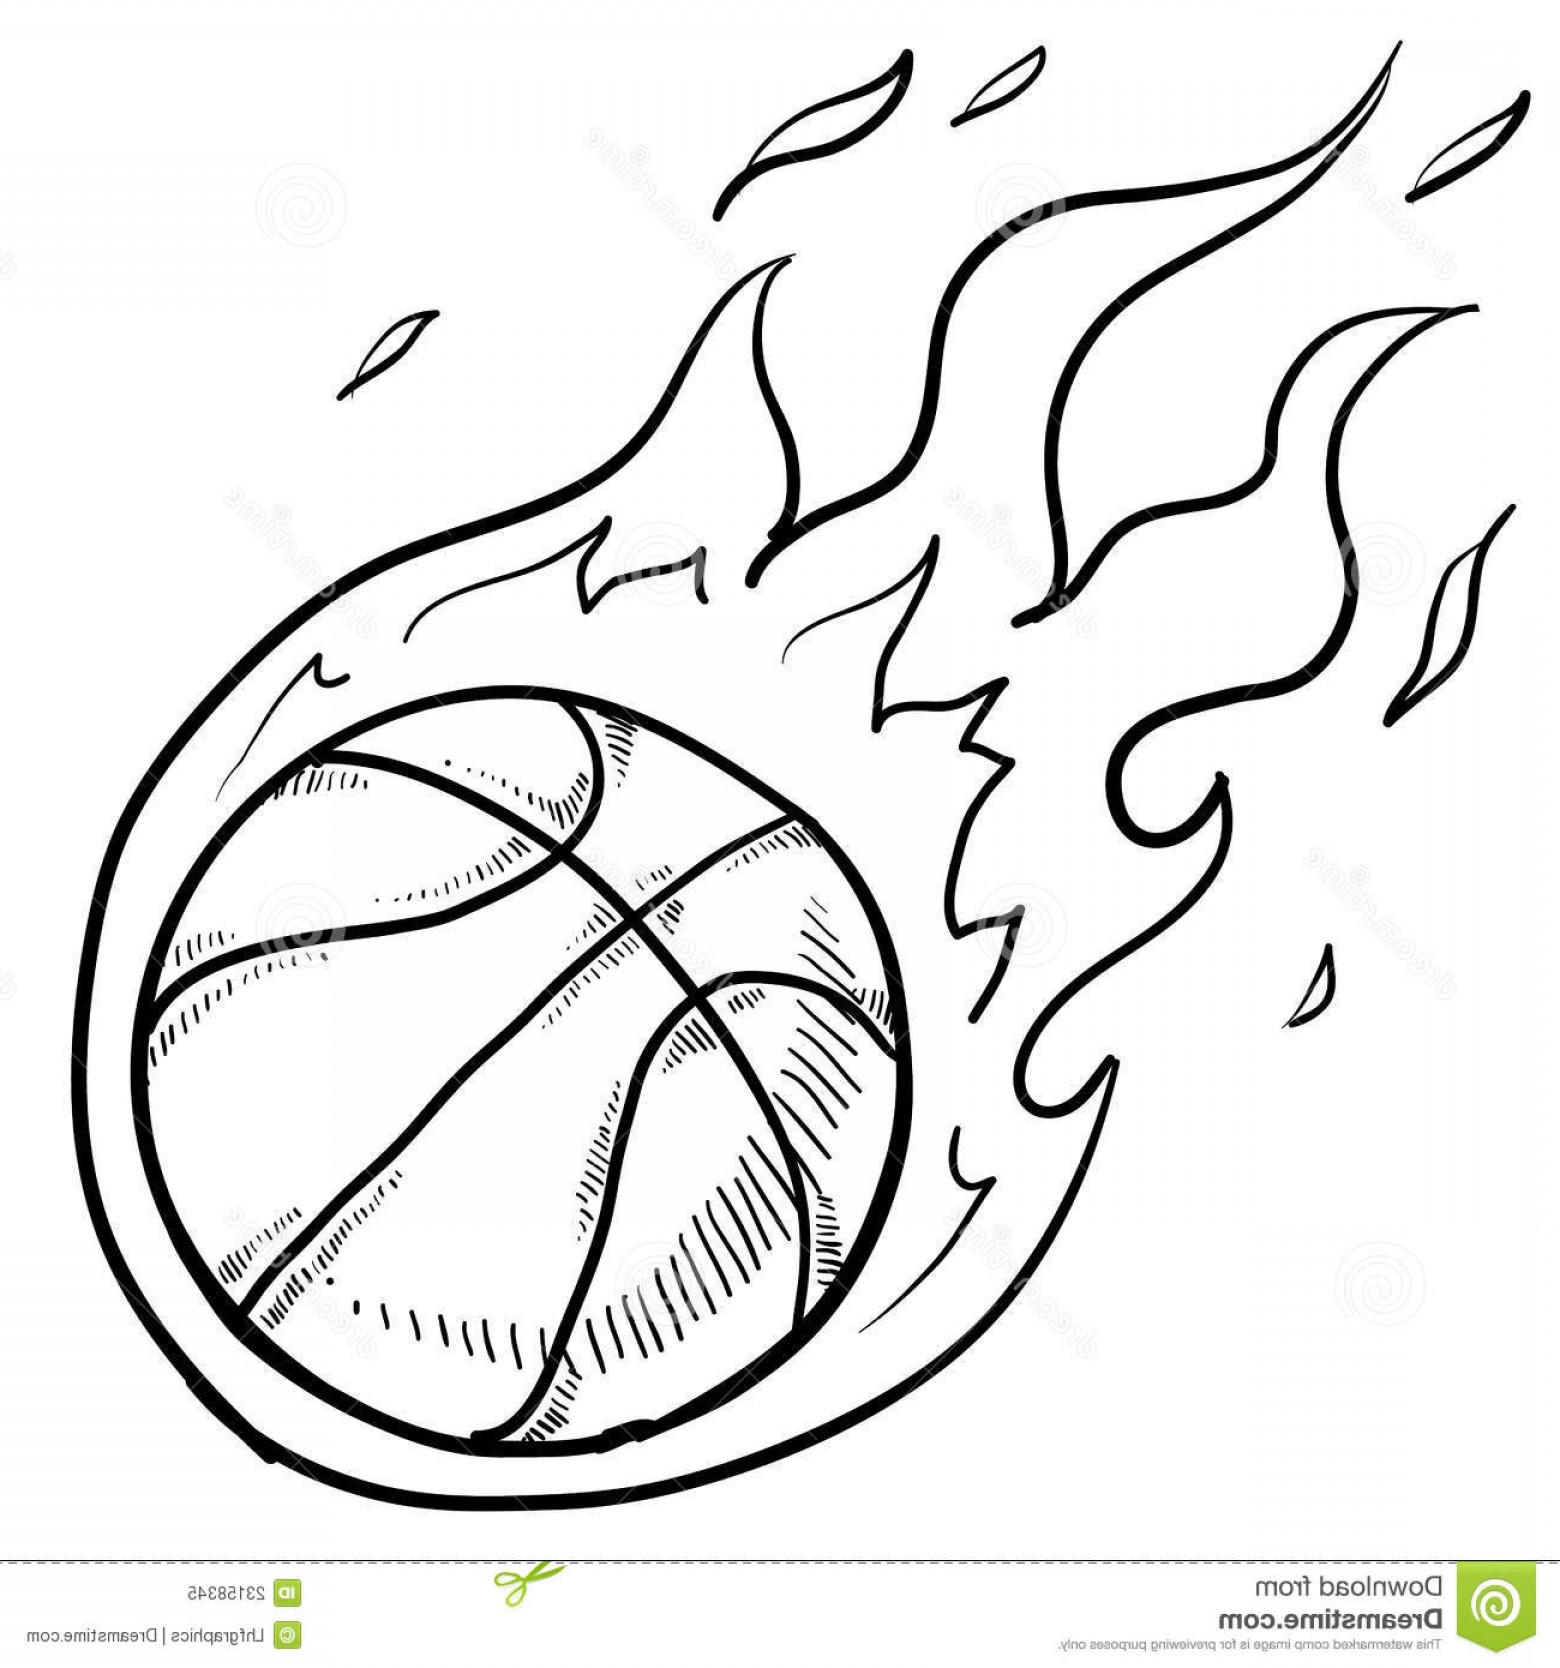 Color Basketball Outline Vector: Royalty Free Stock Photo Basketball Playoffs Sketch Image